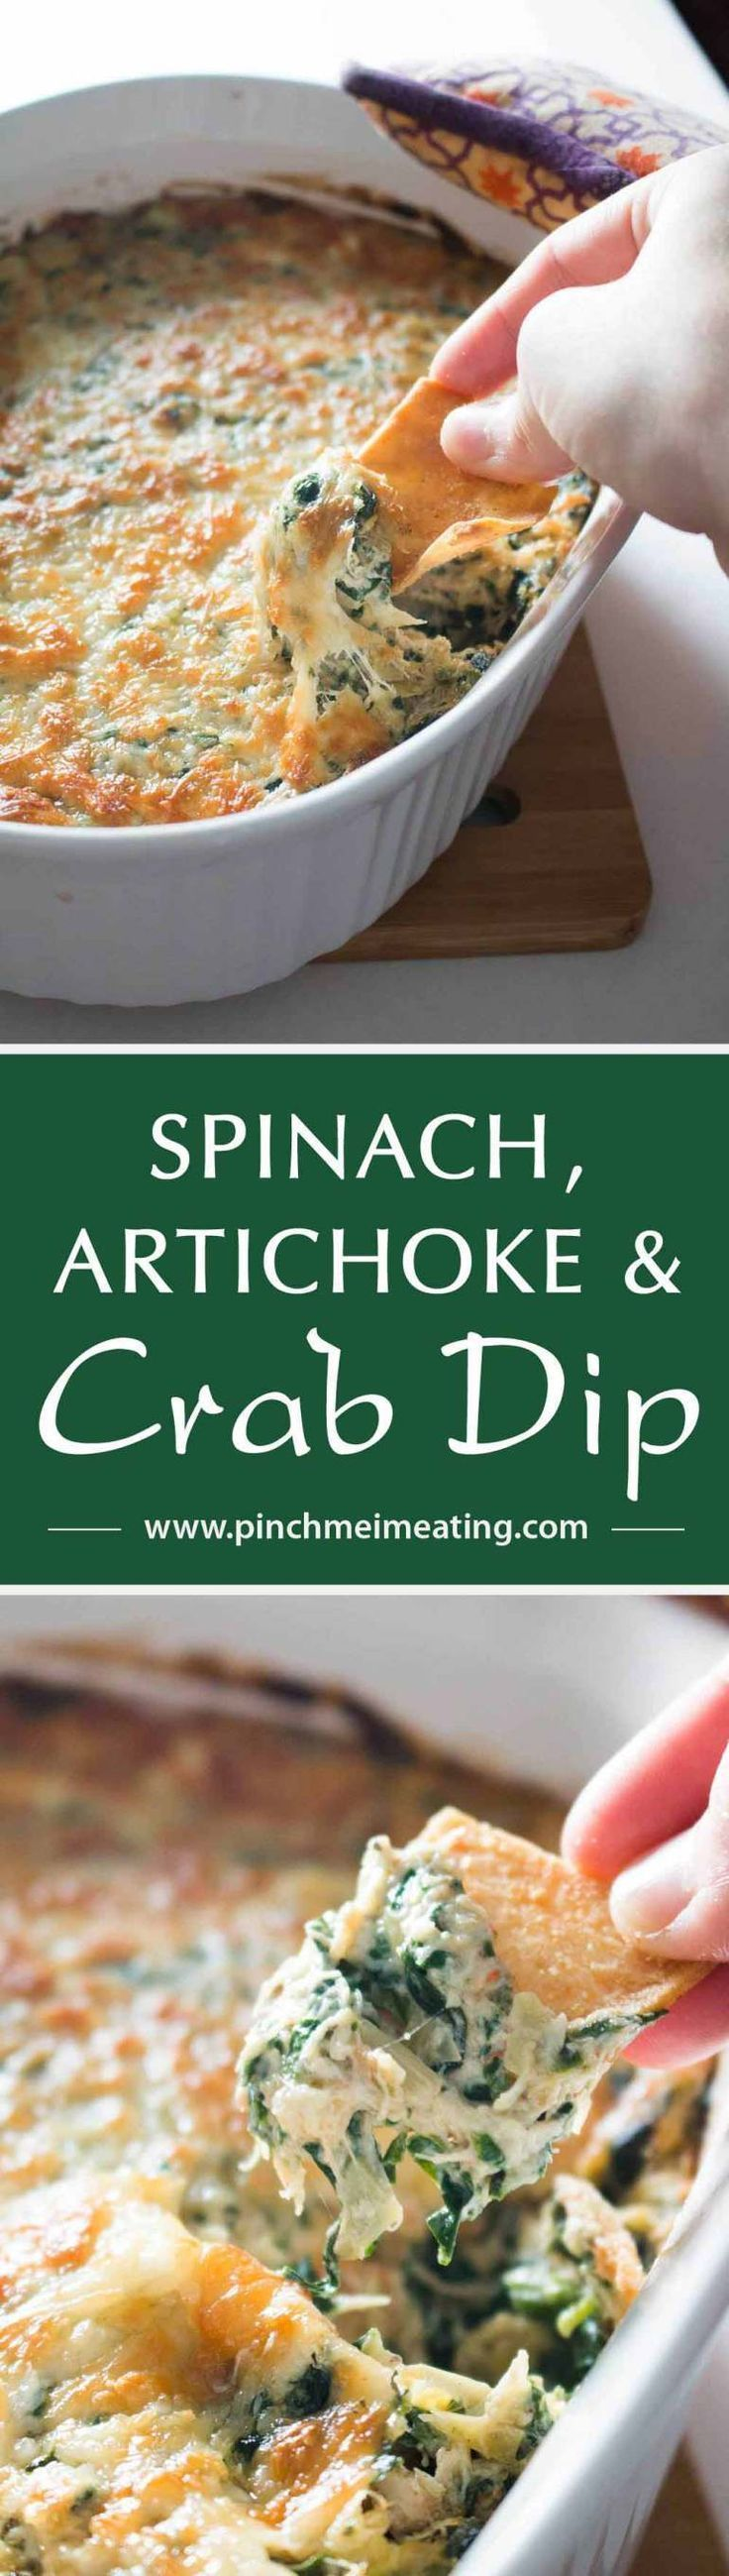 This hot baked spinach, artichoke, and crab dip is the perfect crowd-pleasing party dip - easy to make ahead, perfectly cheesy, and full of the good stuff. | www.pinchmeimeating.com